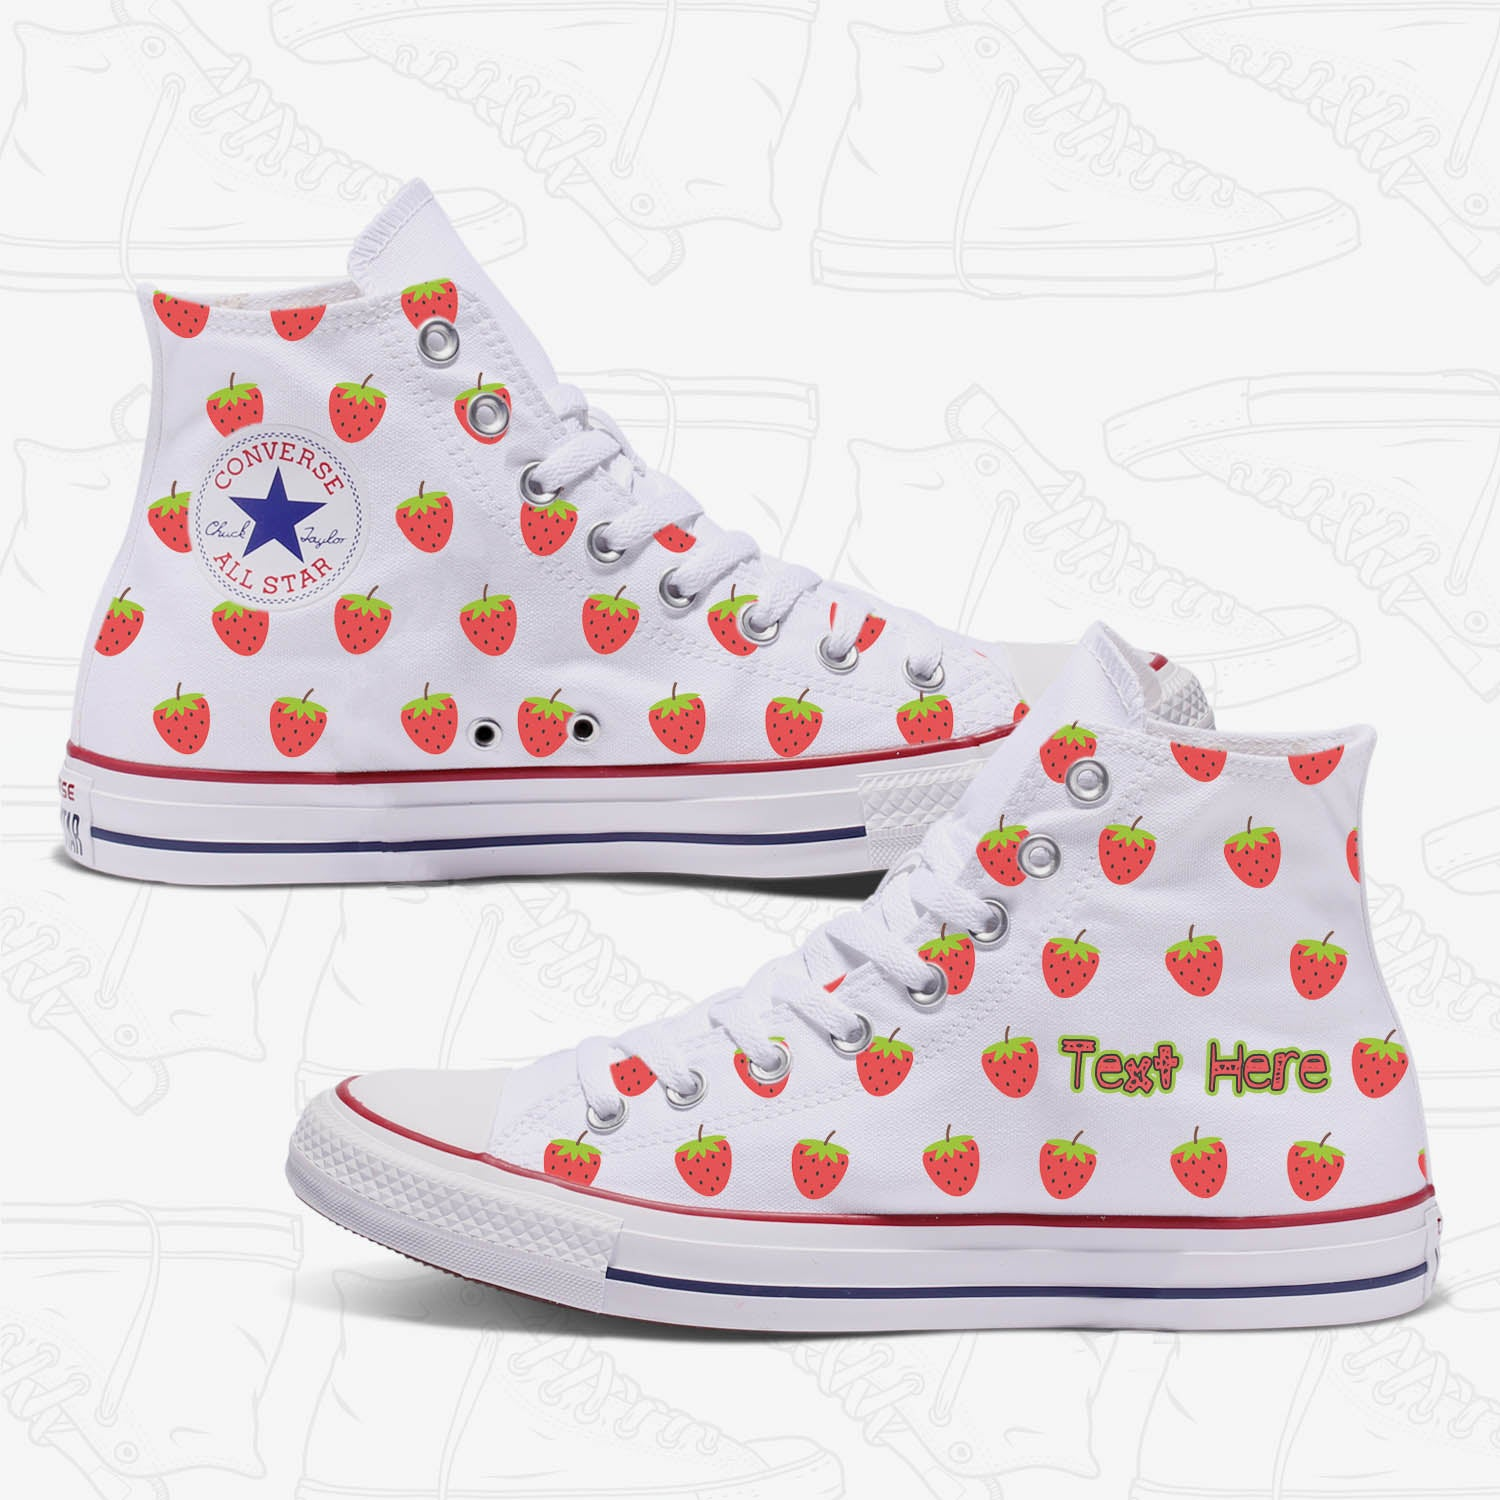 Strawberry Custom Adult Converse Chuck Taylor